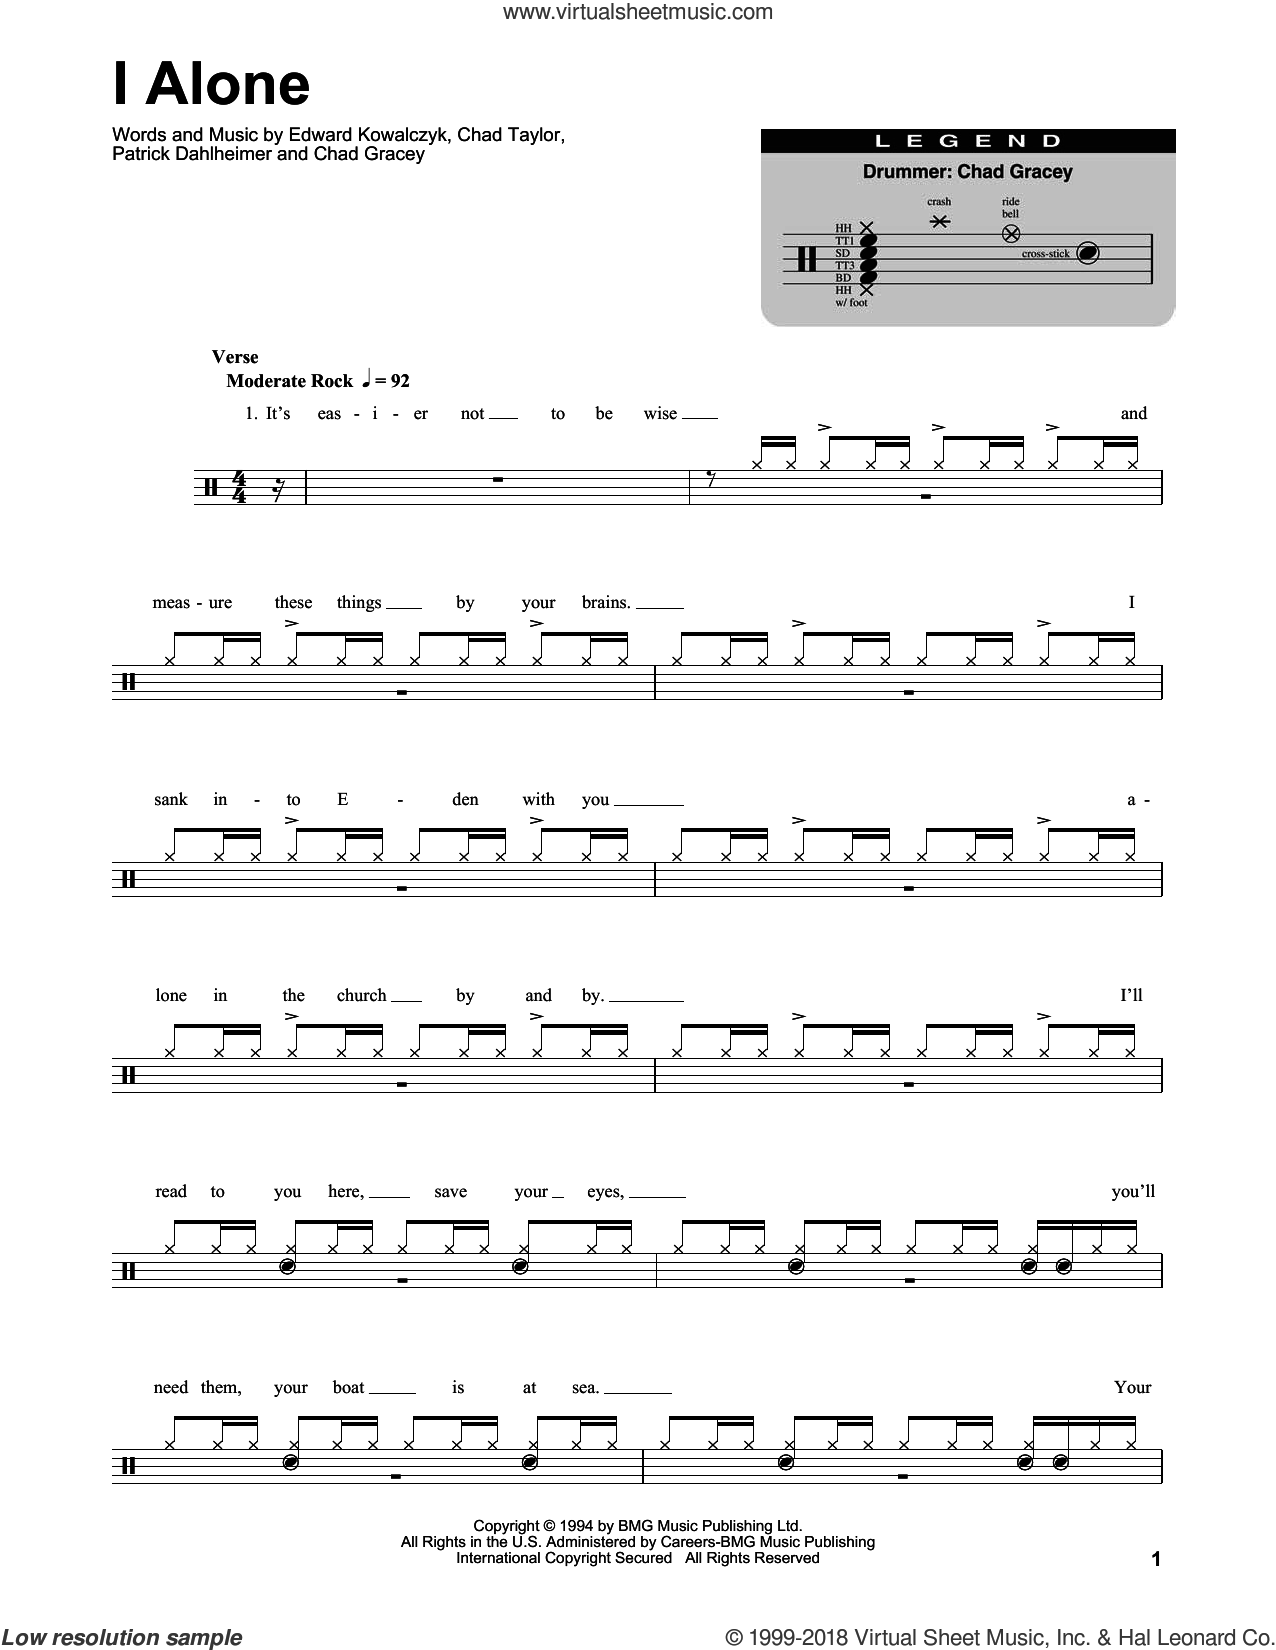 I Alone sheet music for drums by Patrick Dahlheimer, Live, Chad Taylor and Edward Kowalczyk. Score Image Preview.